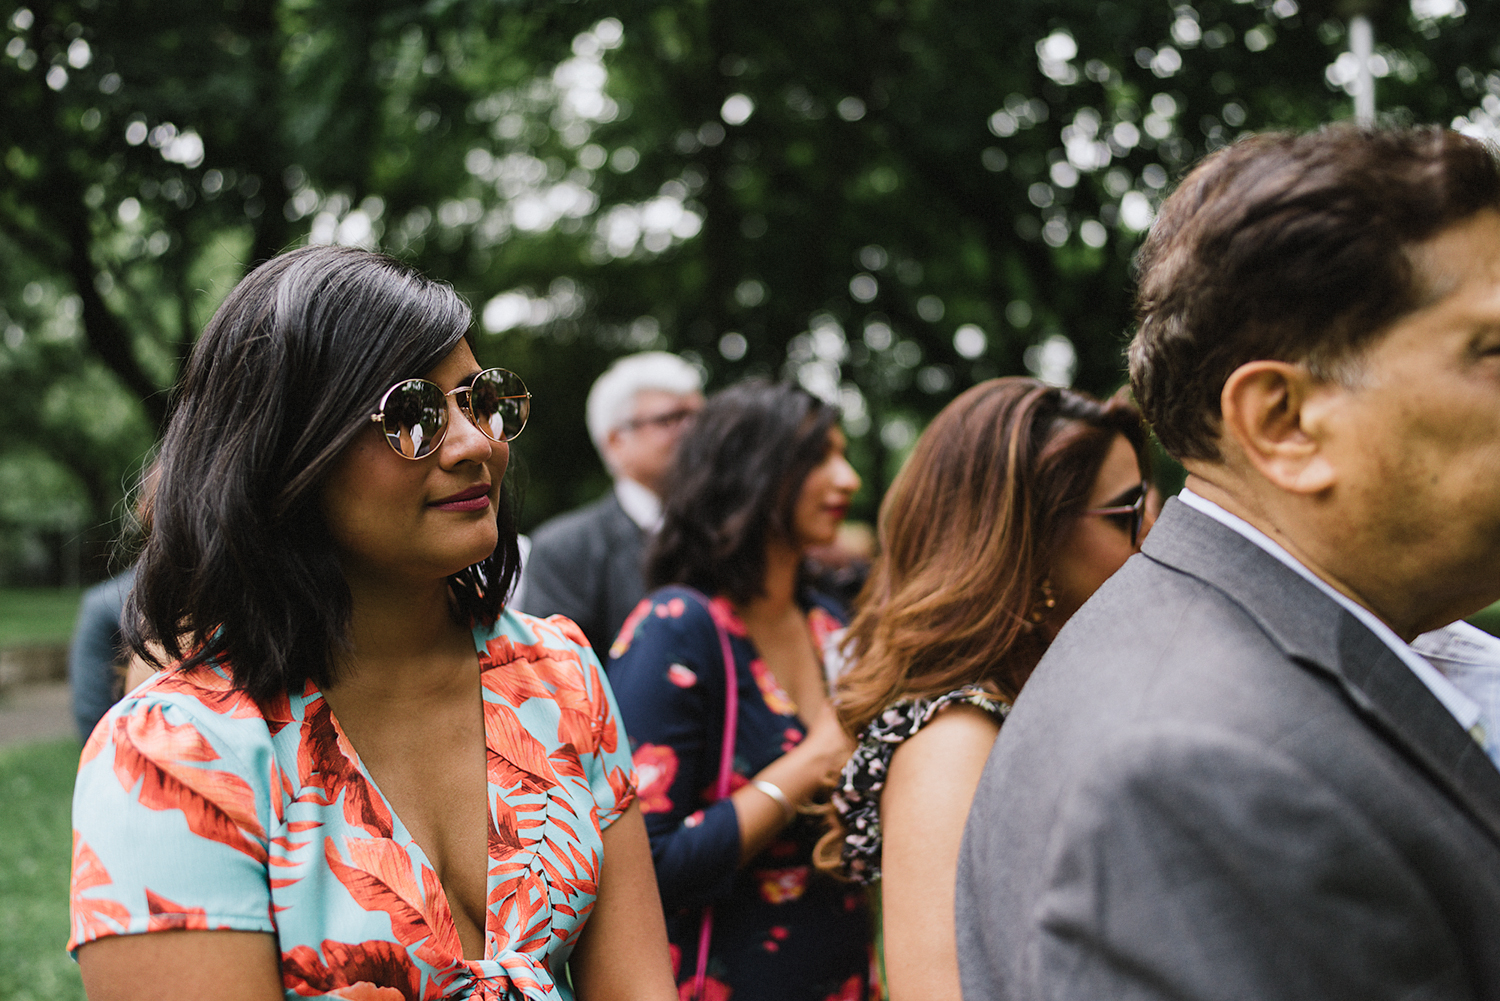 Intimate-Toronto-Pop-Up-Elopement-Downtown-Urban-film-analog-photography-toronto-wedding-photographers-alternative-hipster-bride-and-groom-badass-ceremony-bride-and-groom-guests-watching.jpg